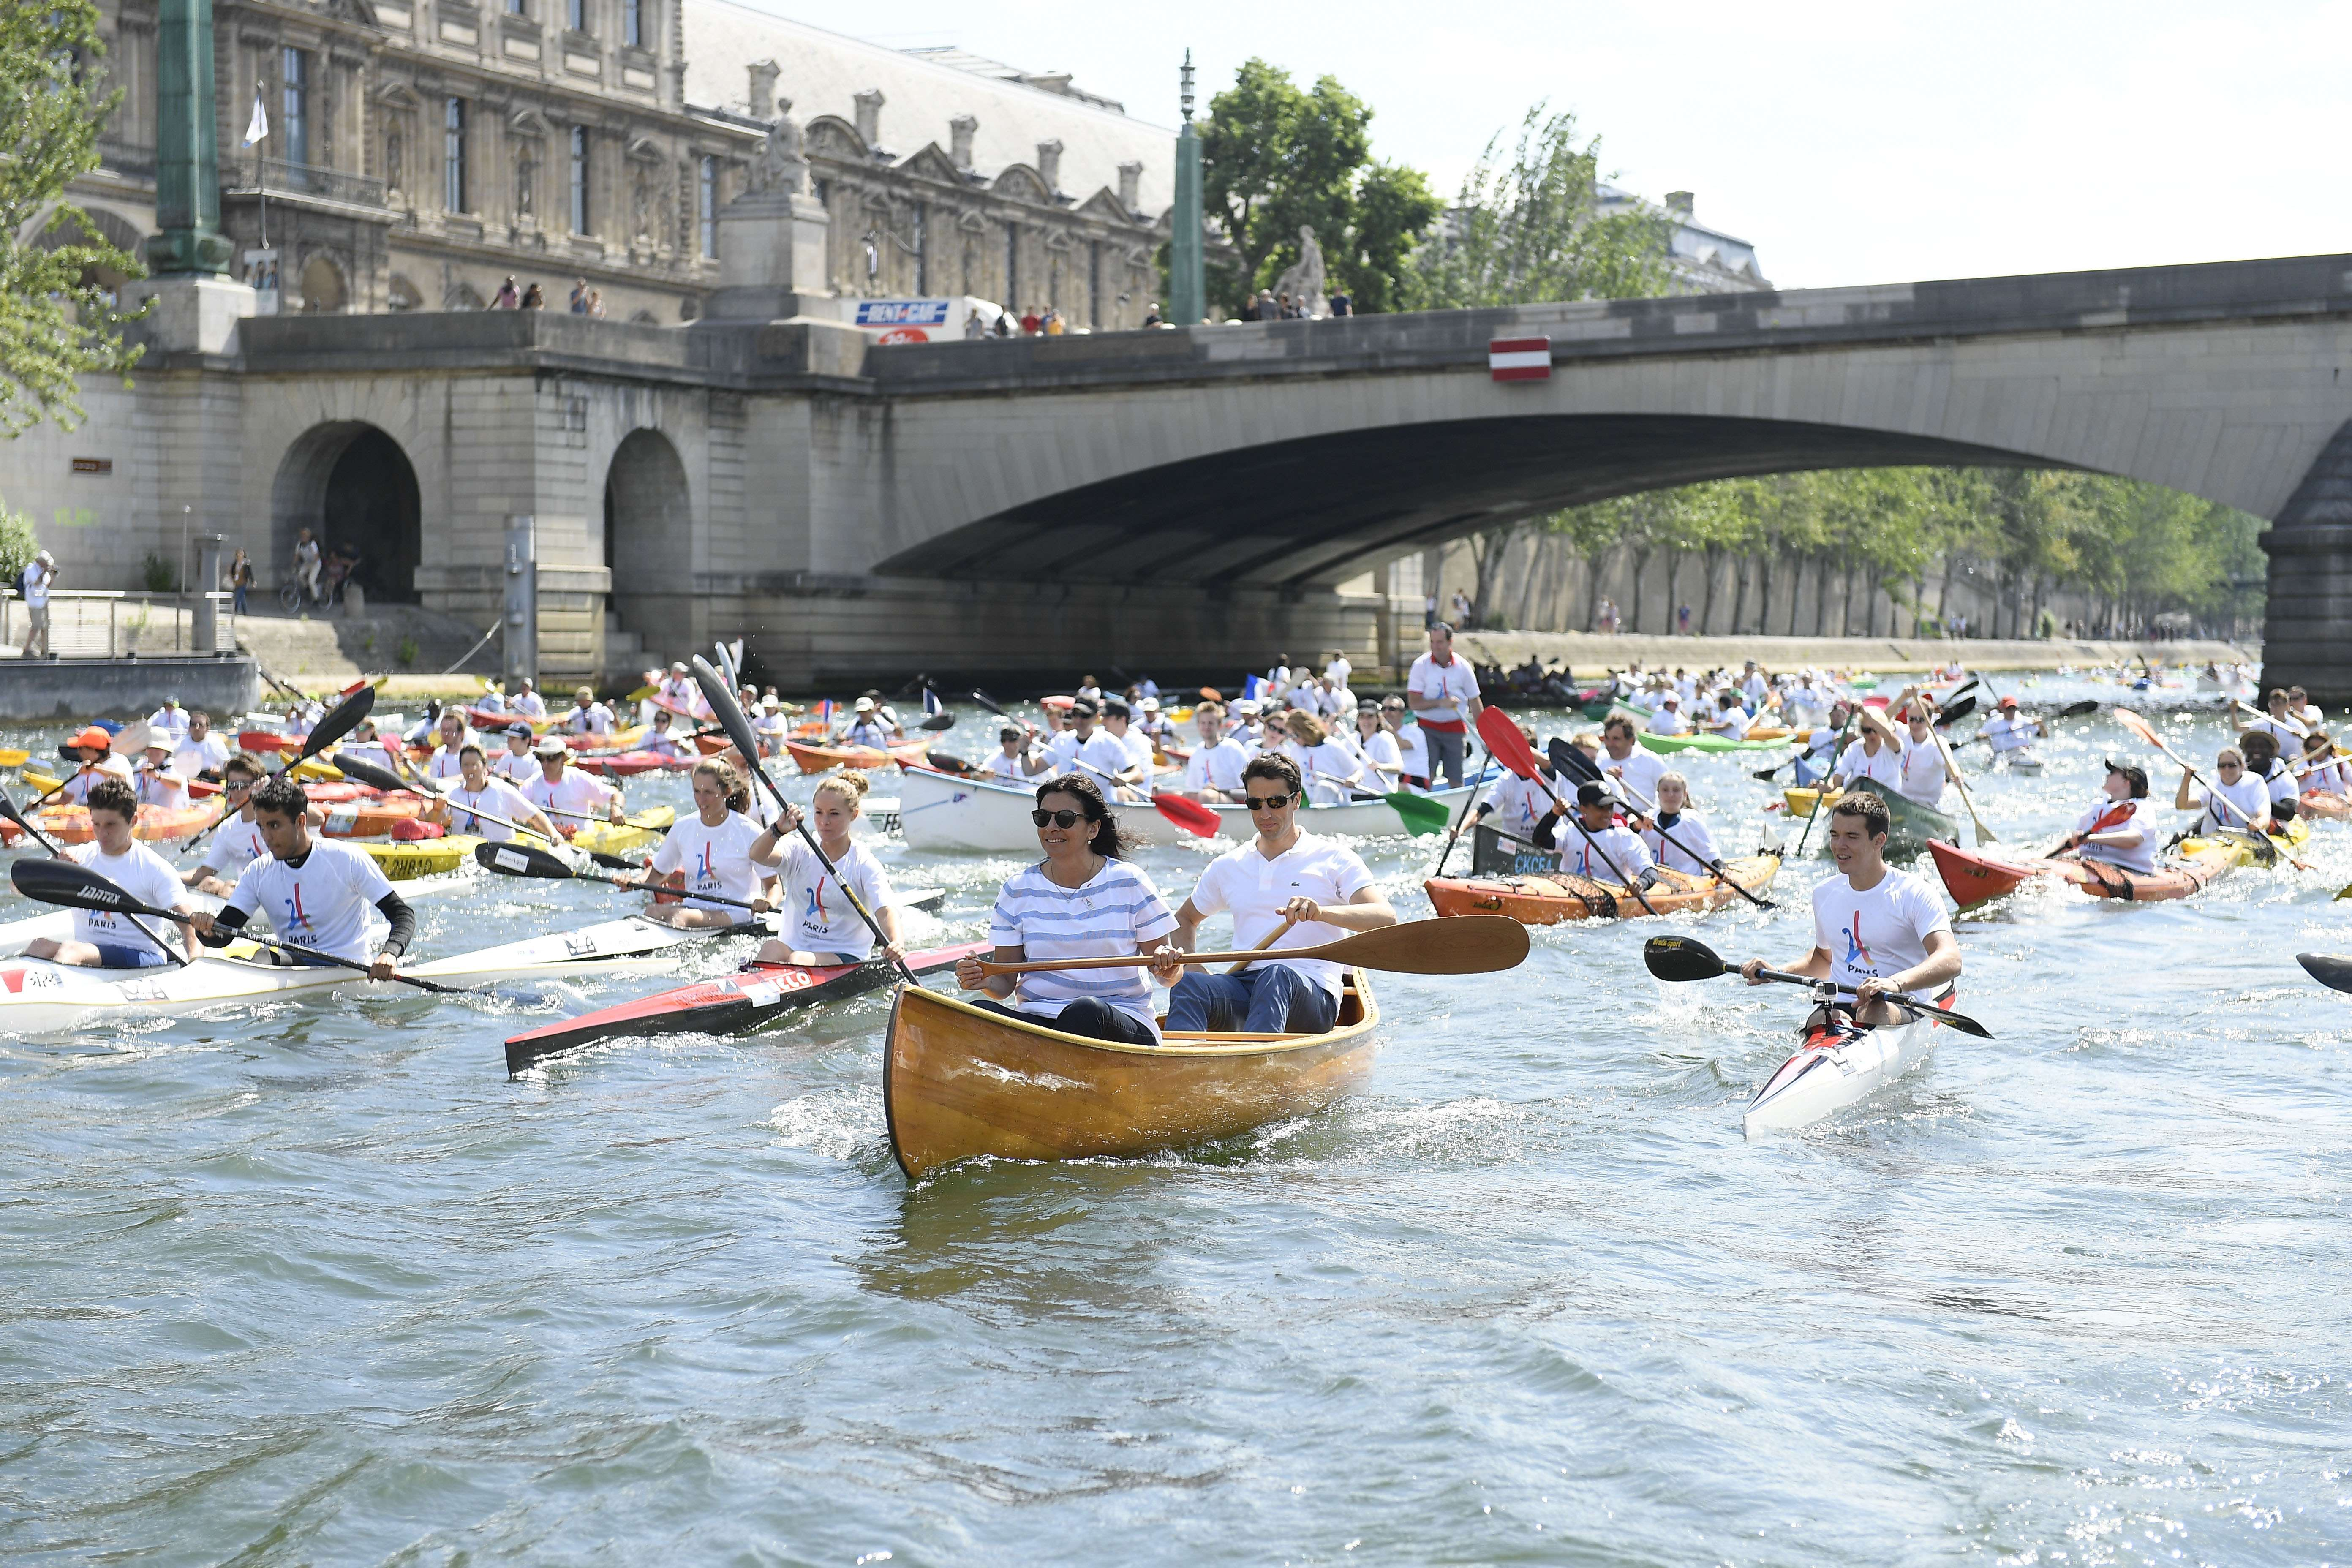 Paris Mayor Anne Hidalgo and the co-president of the Paris bid for the 2024 Olympics Tony Estanguet sail on the Seine river in ParisOlympic Days event, Paris, France - 23 Jun 2017